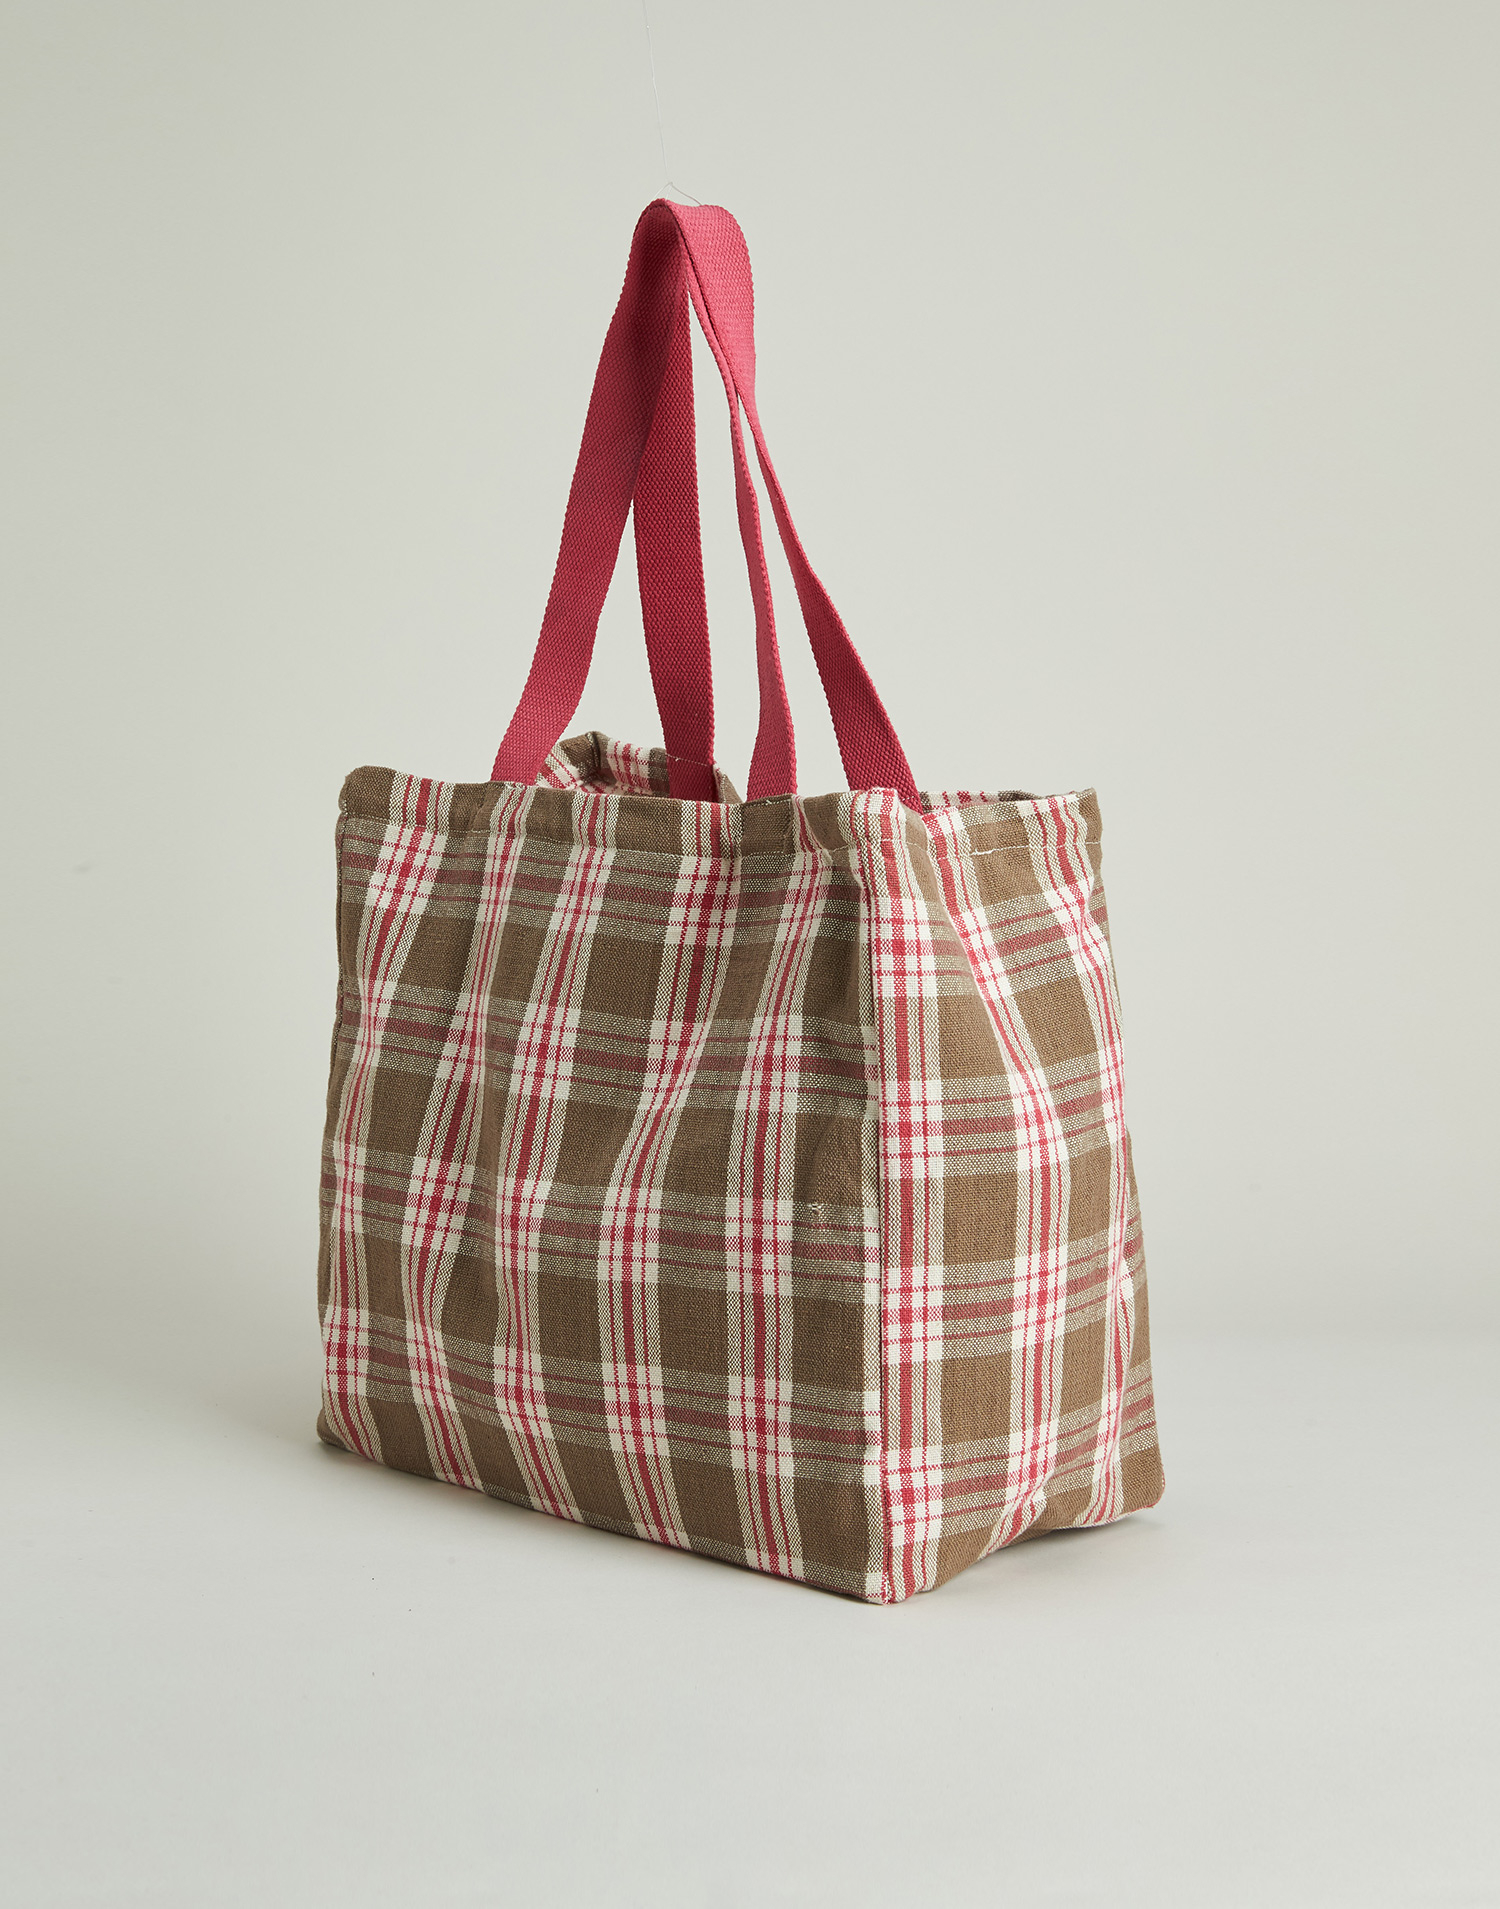 Tote bag with contrasted handles